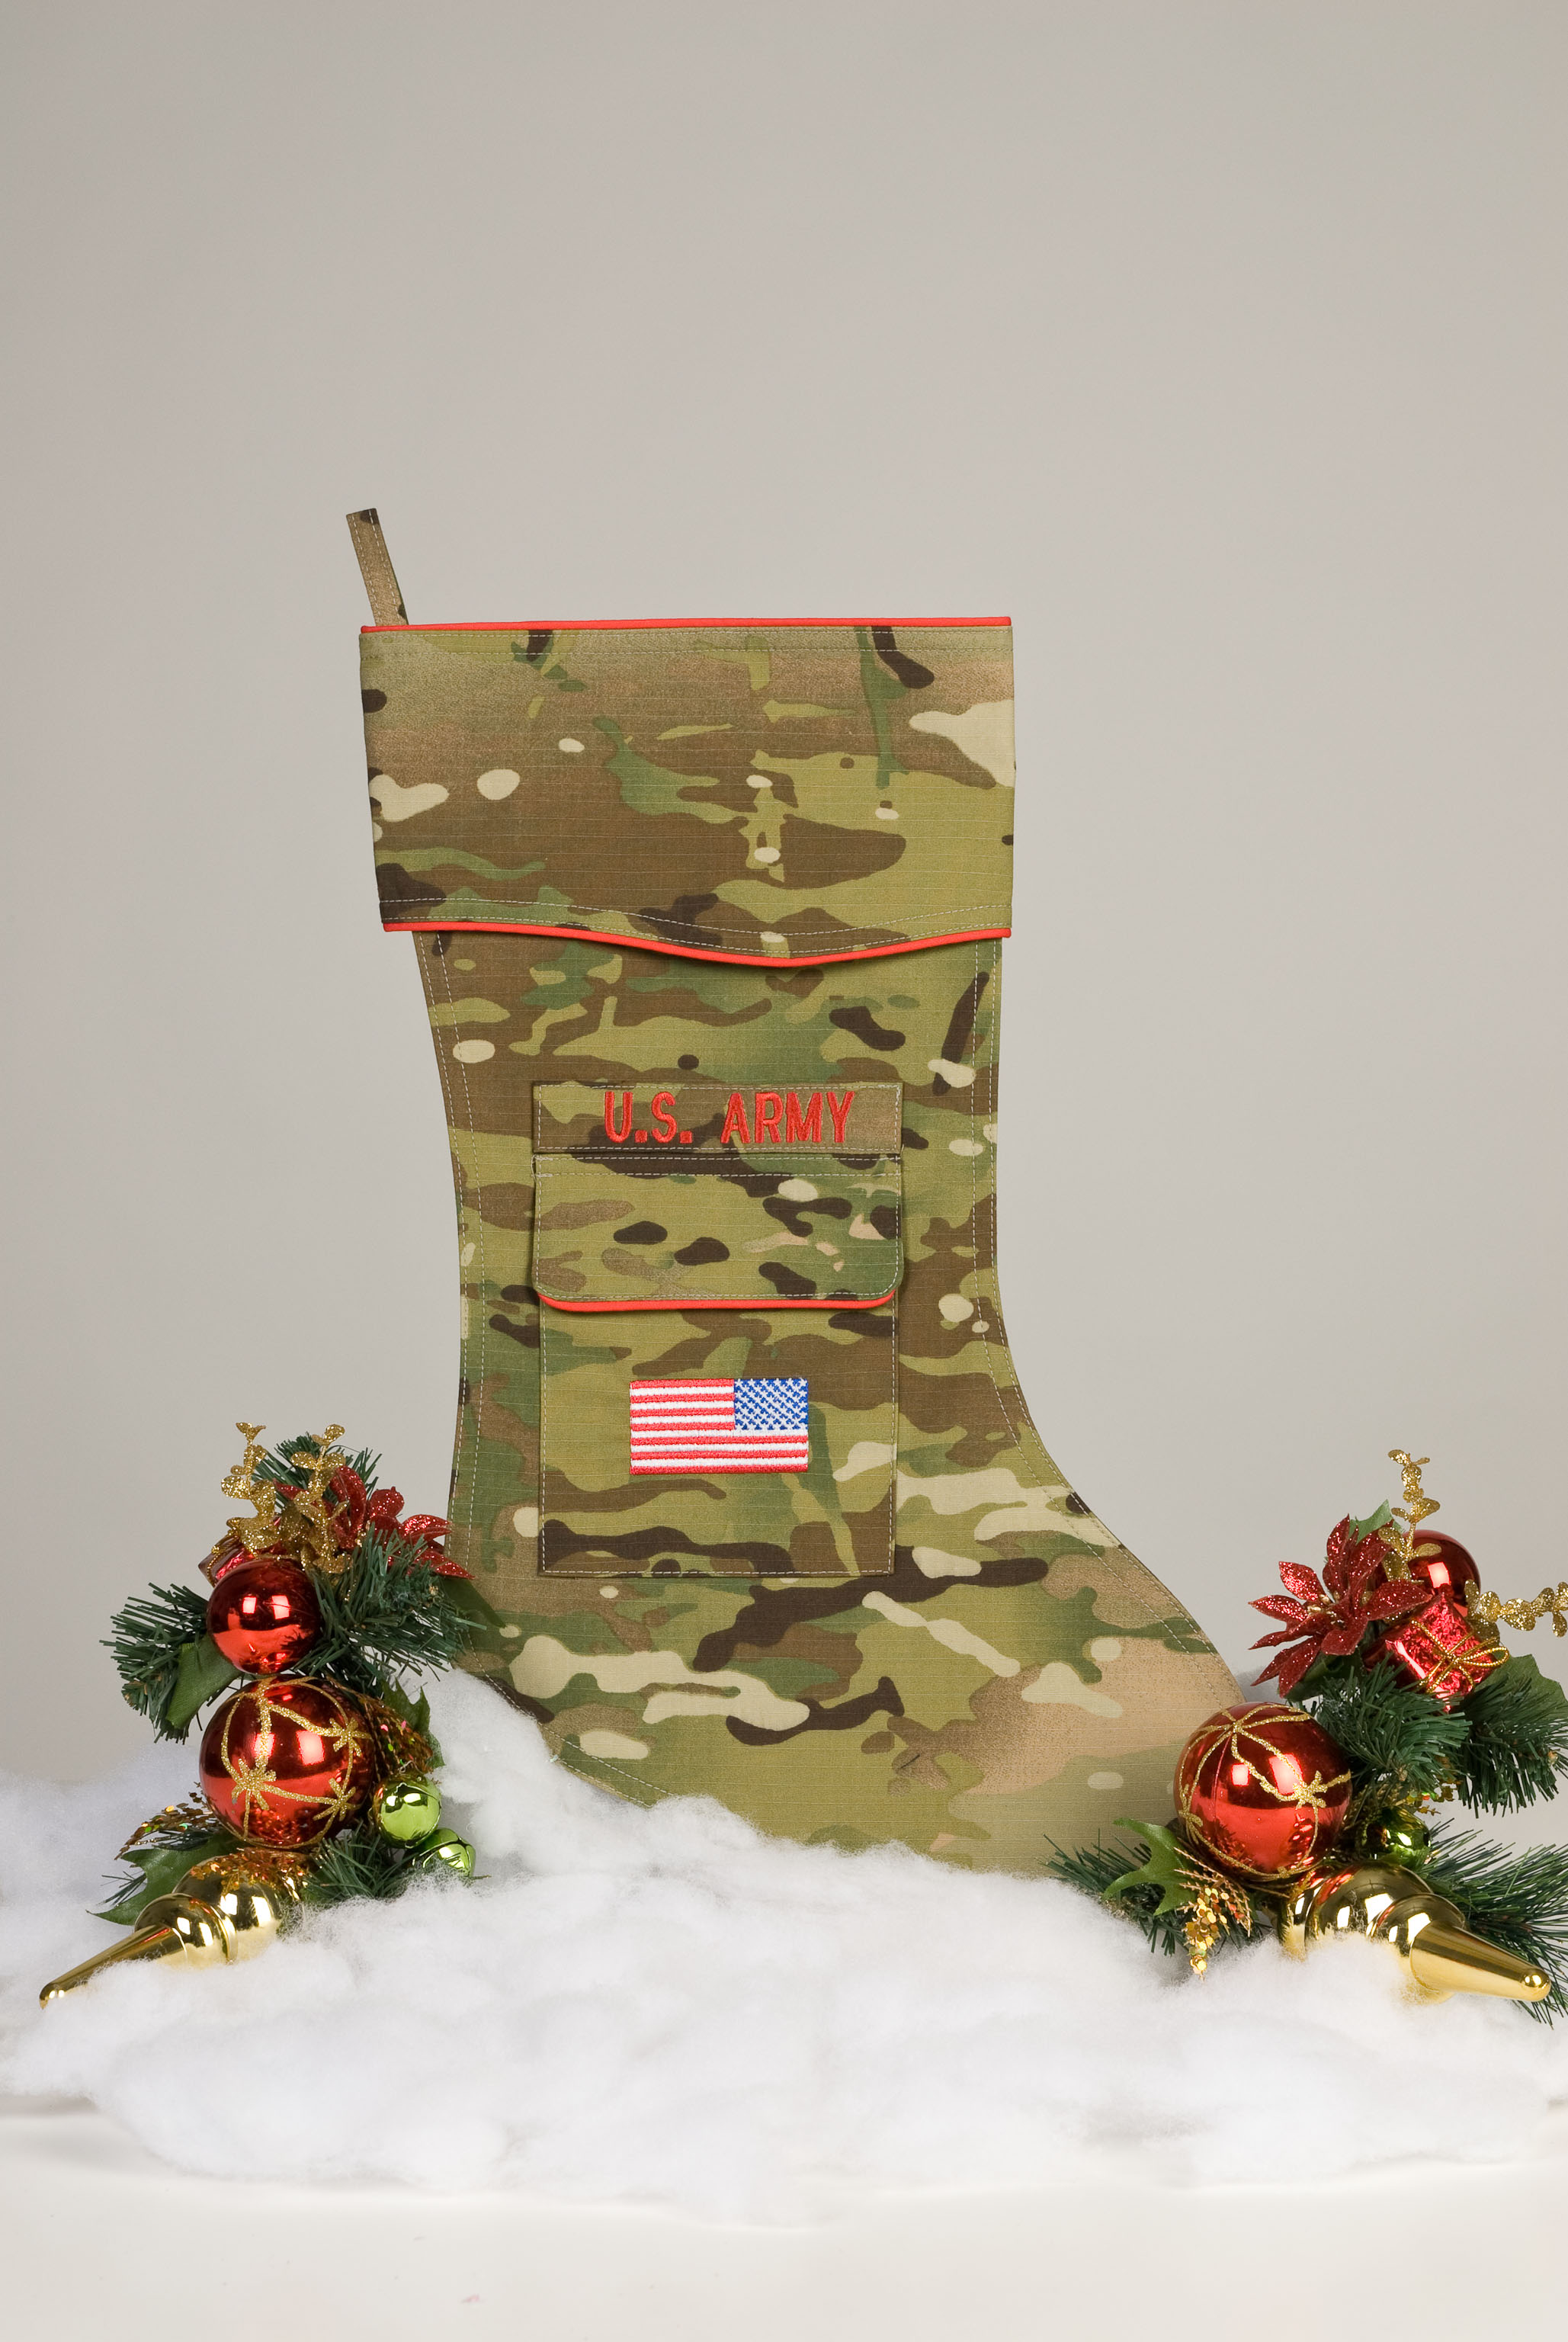 U.S. Army Christmas Stocking by Camosock by Camosock